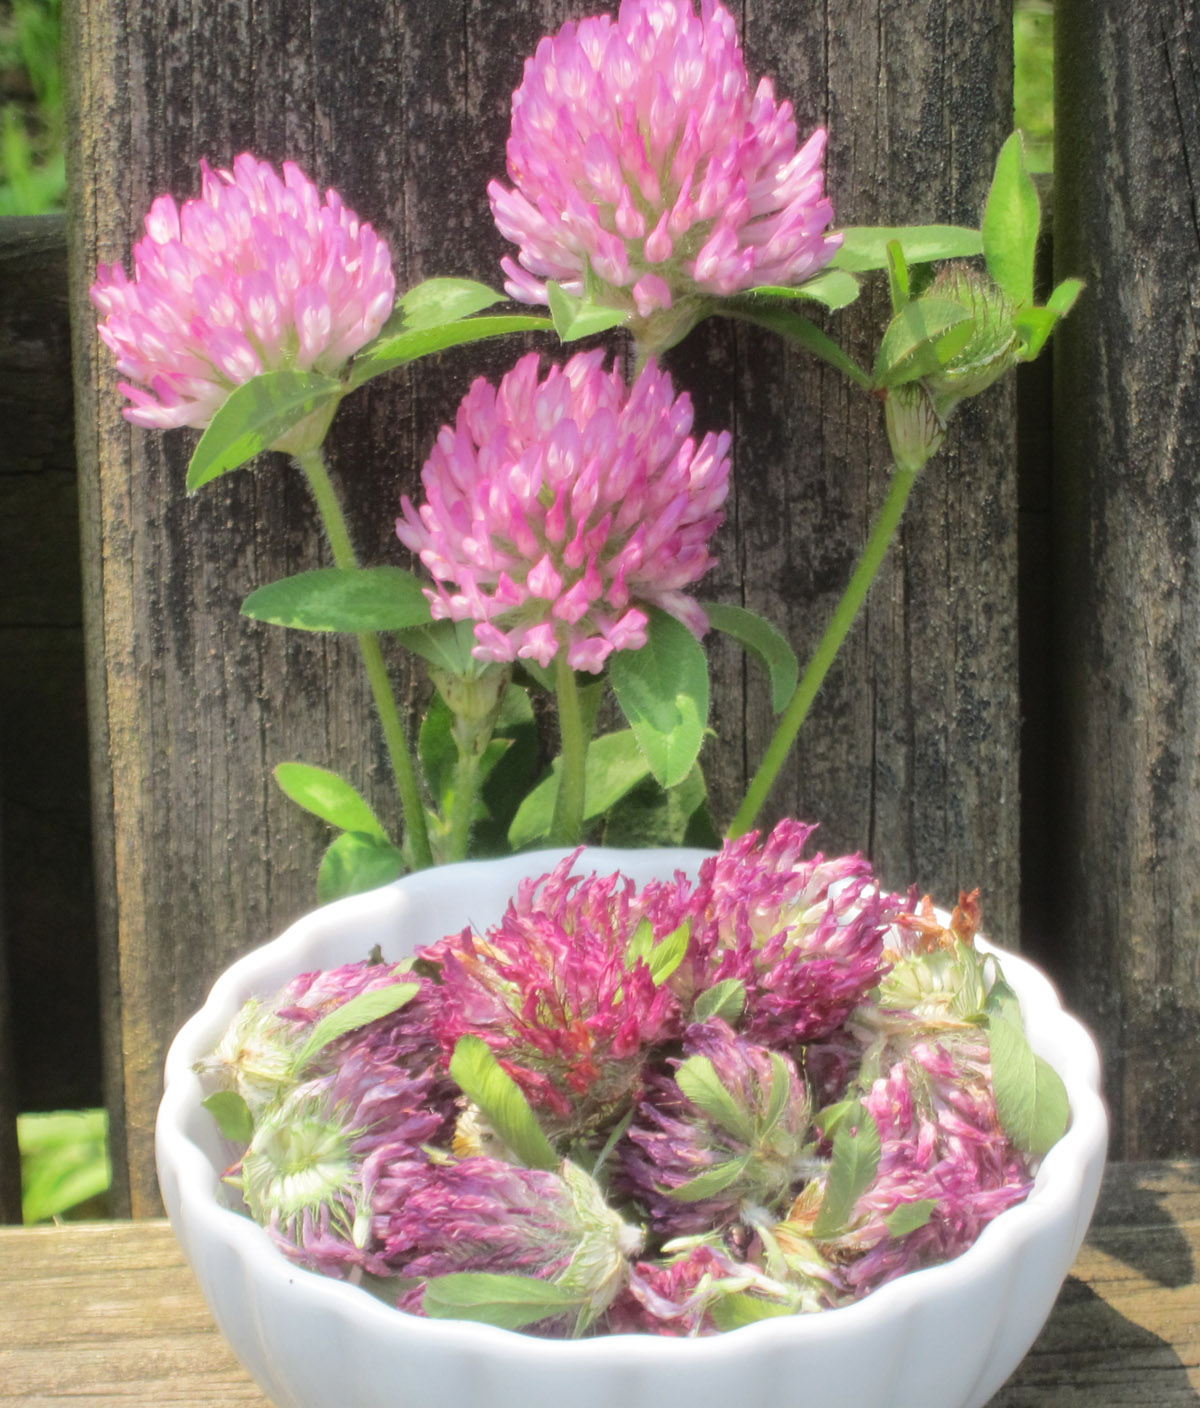 Drying herbs in your car red clover